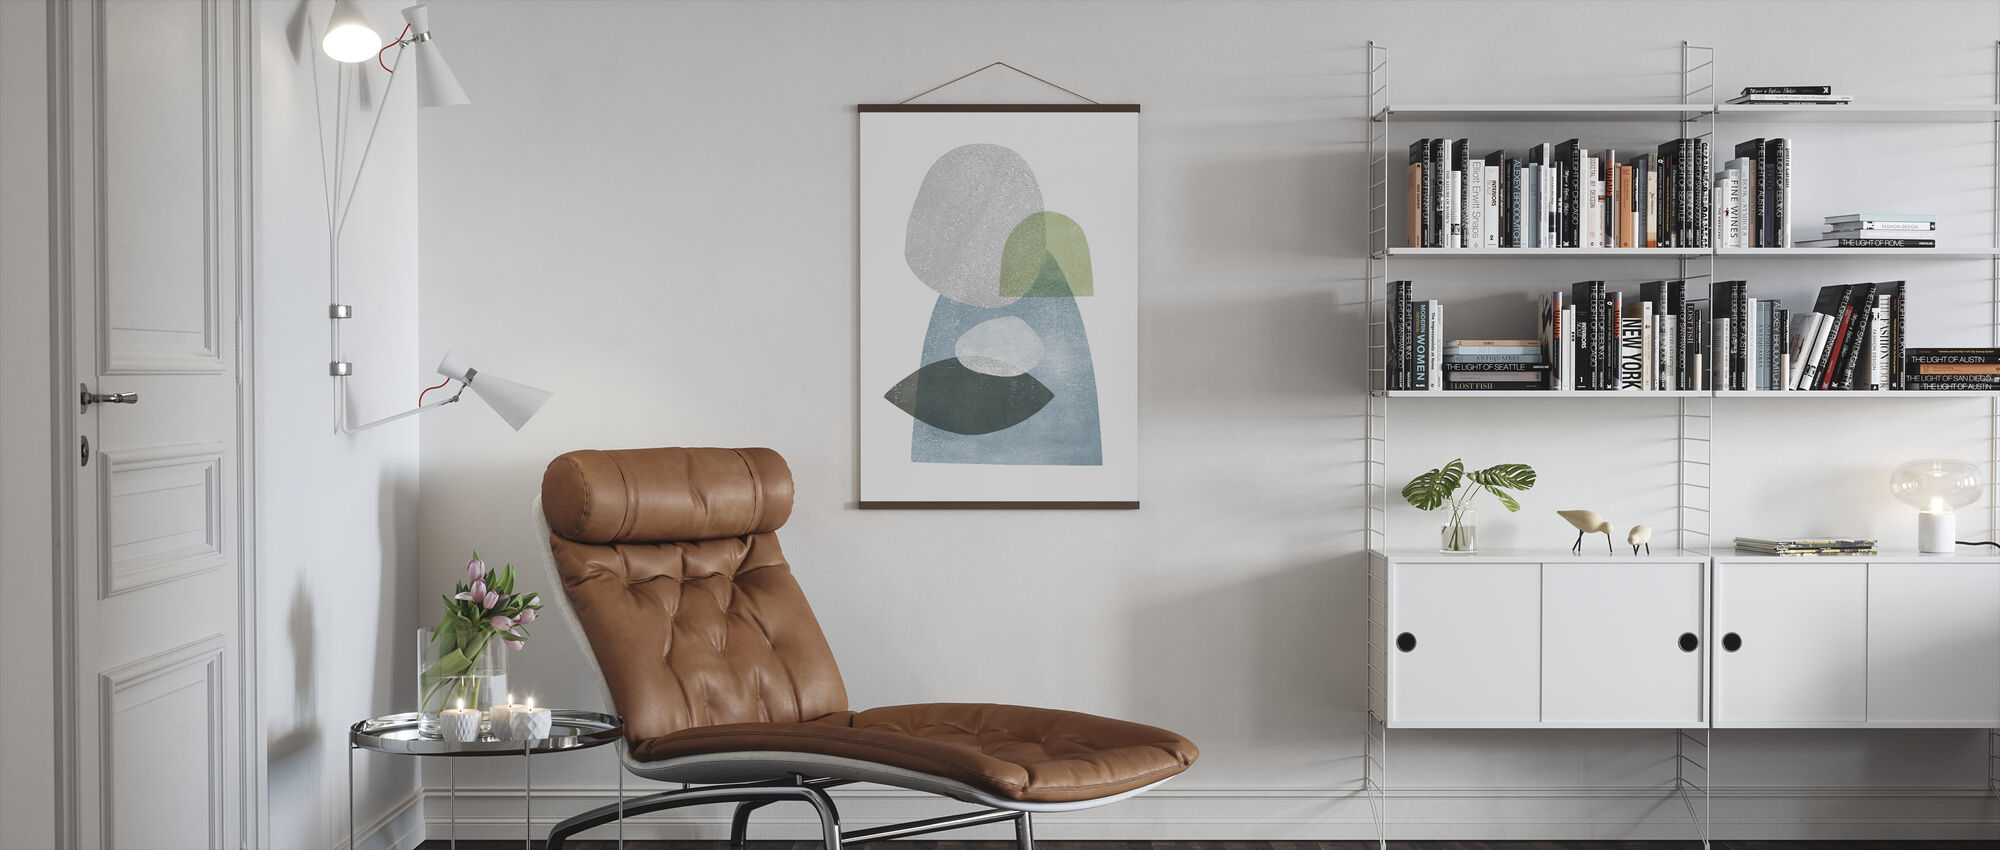 Whispers III - Poster - Living Room